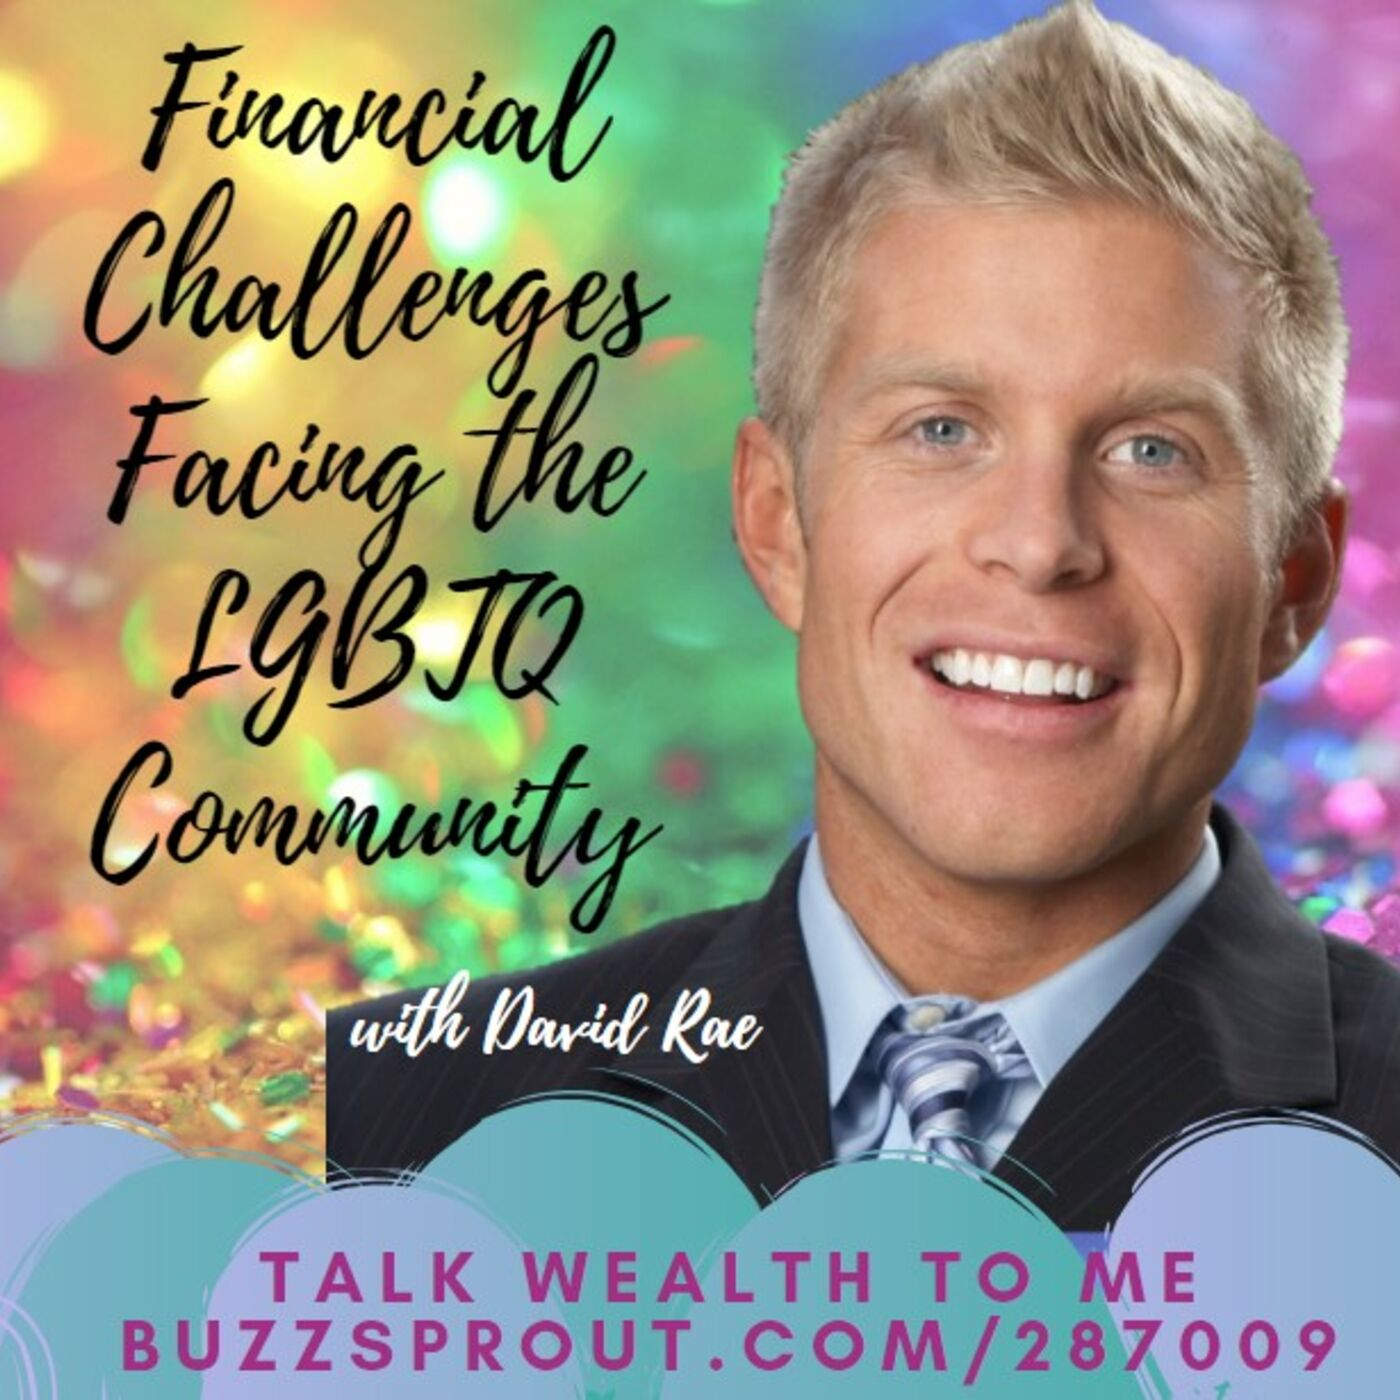 Financial Challenges for the LGBTQ Community